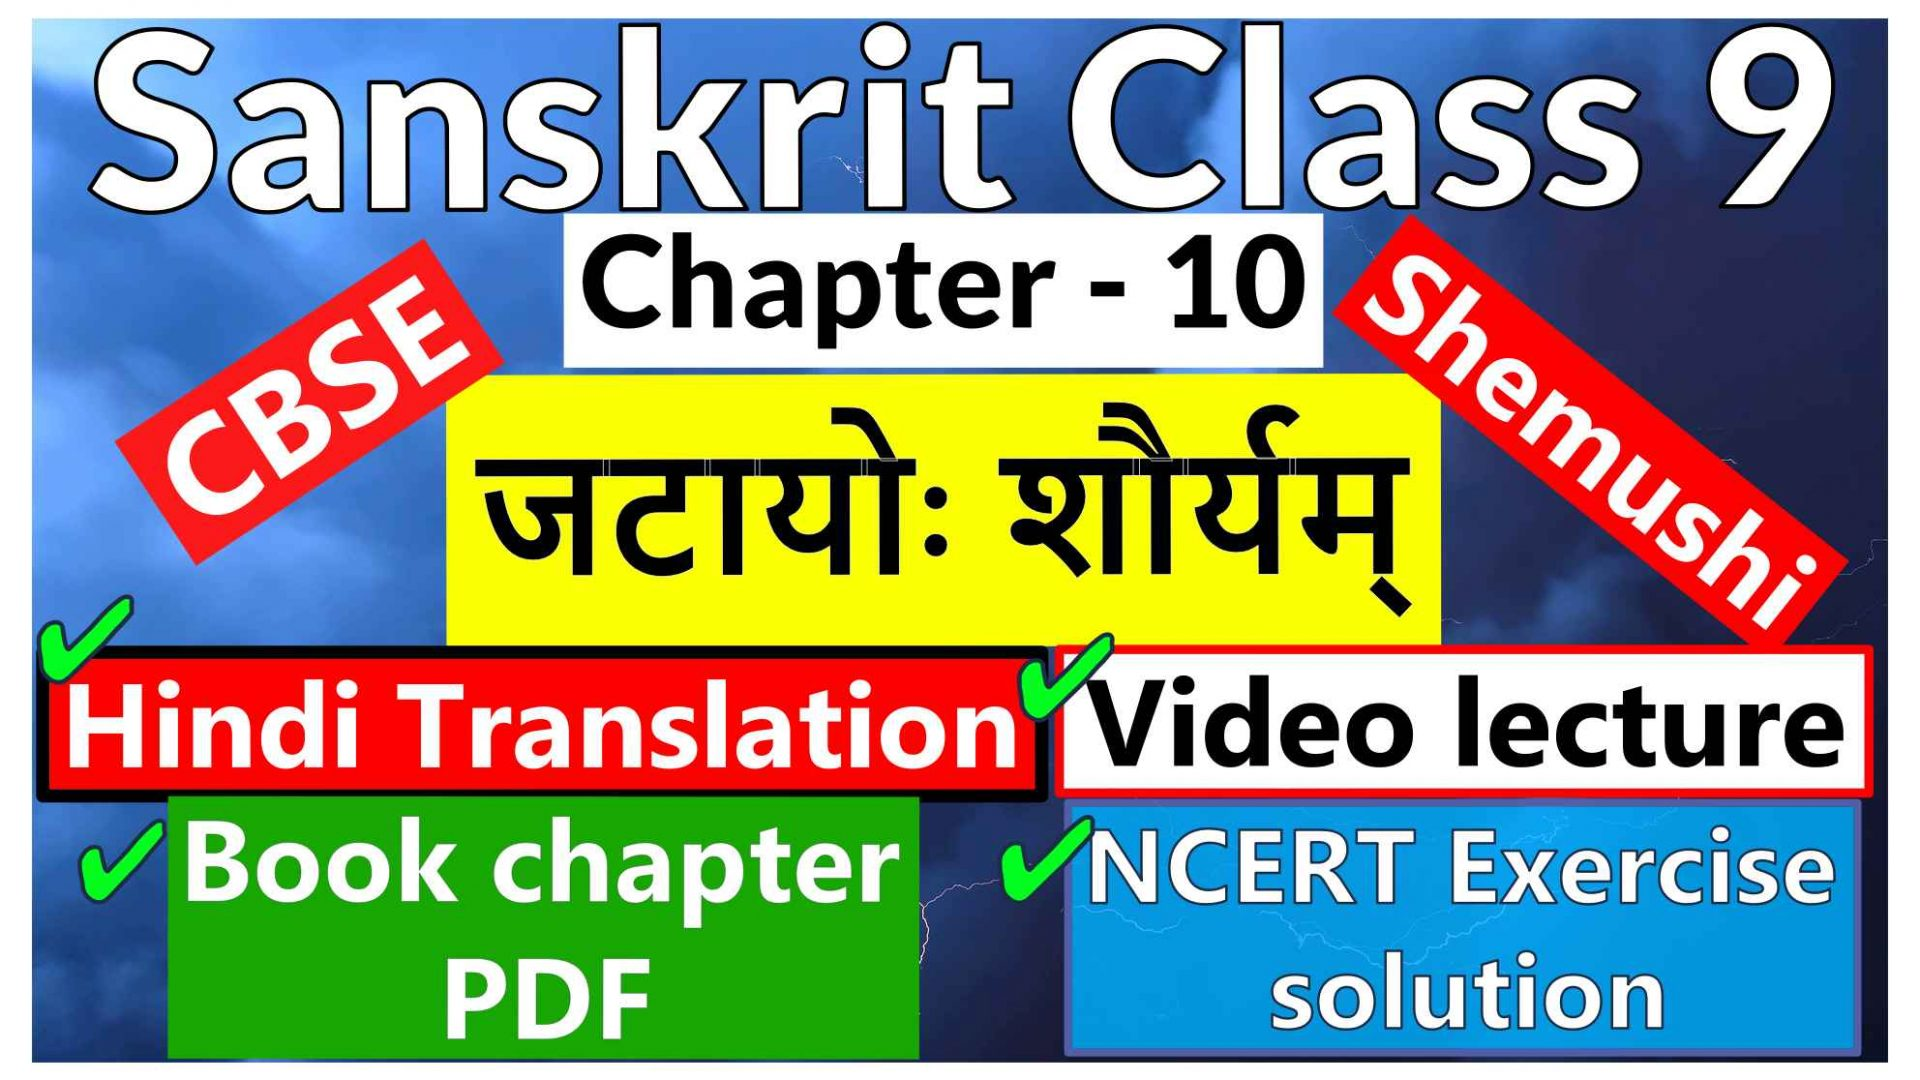 Sanskrit Class 9 -Chapter 10 - जटायोः शौर्यम् - Hindi Translation, Video lecture, NCERT Exercise solution (Question-Answer), Book chapter PDF